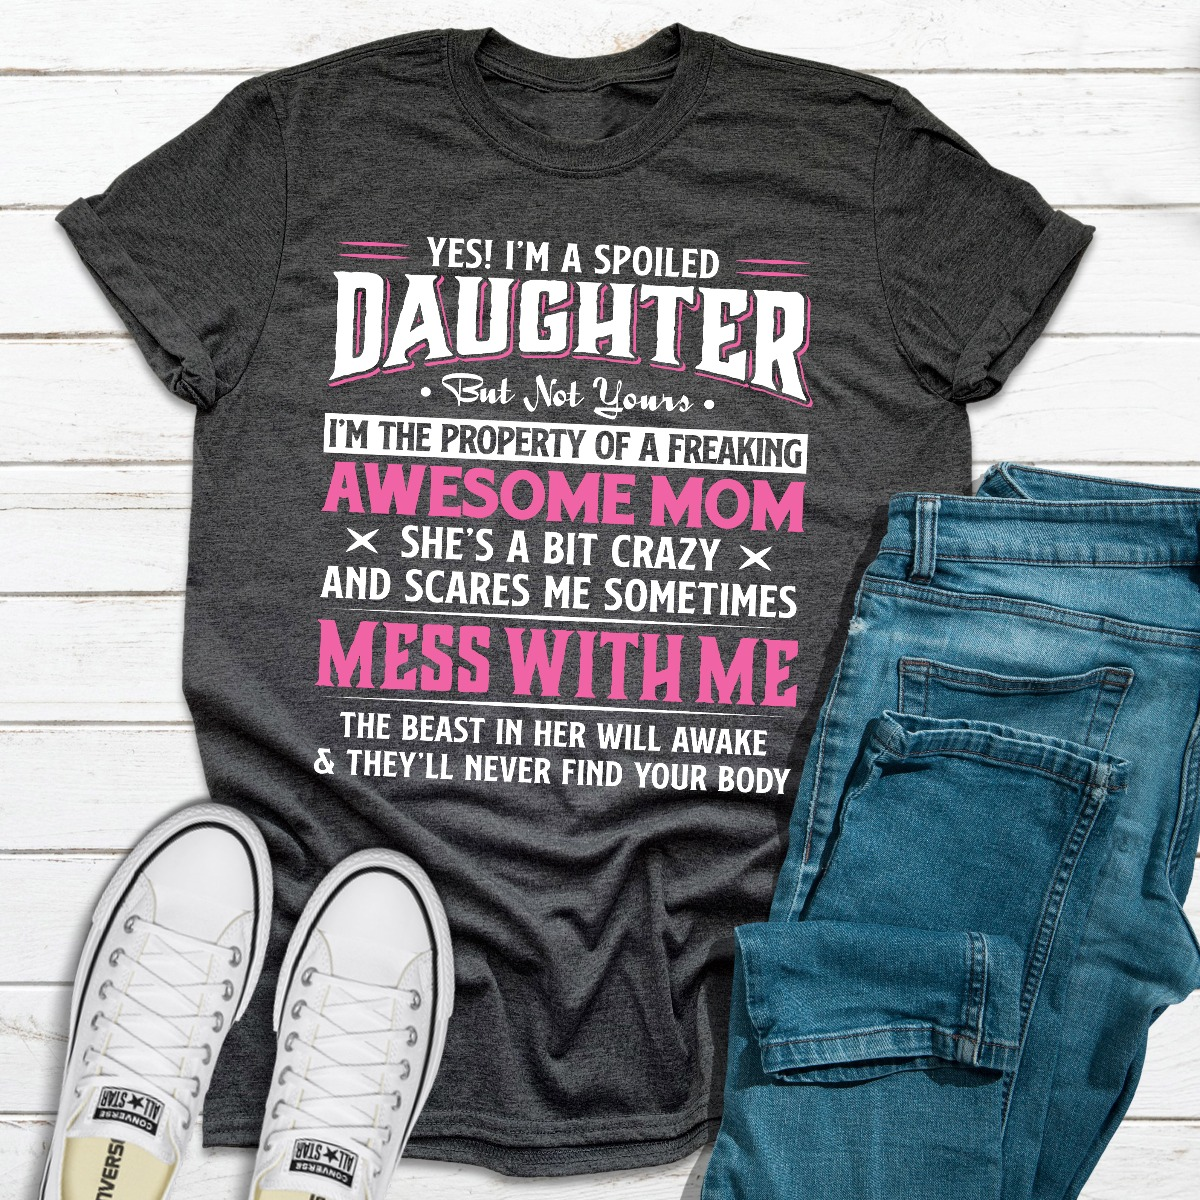 Yes I'm A Spoiled Daughter (Dark Heather / S)